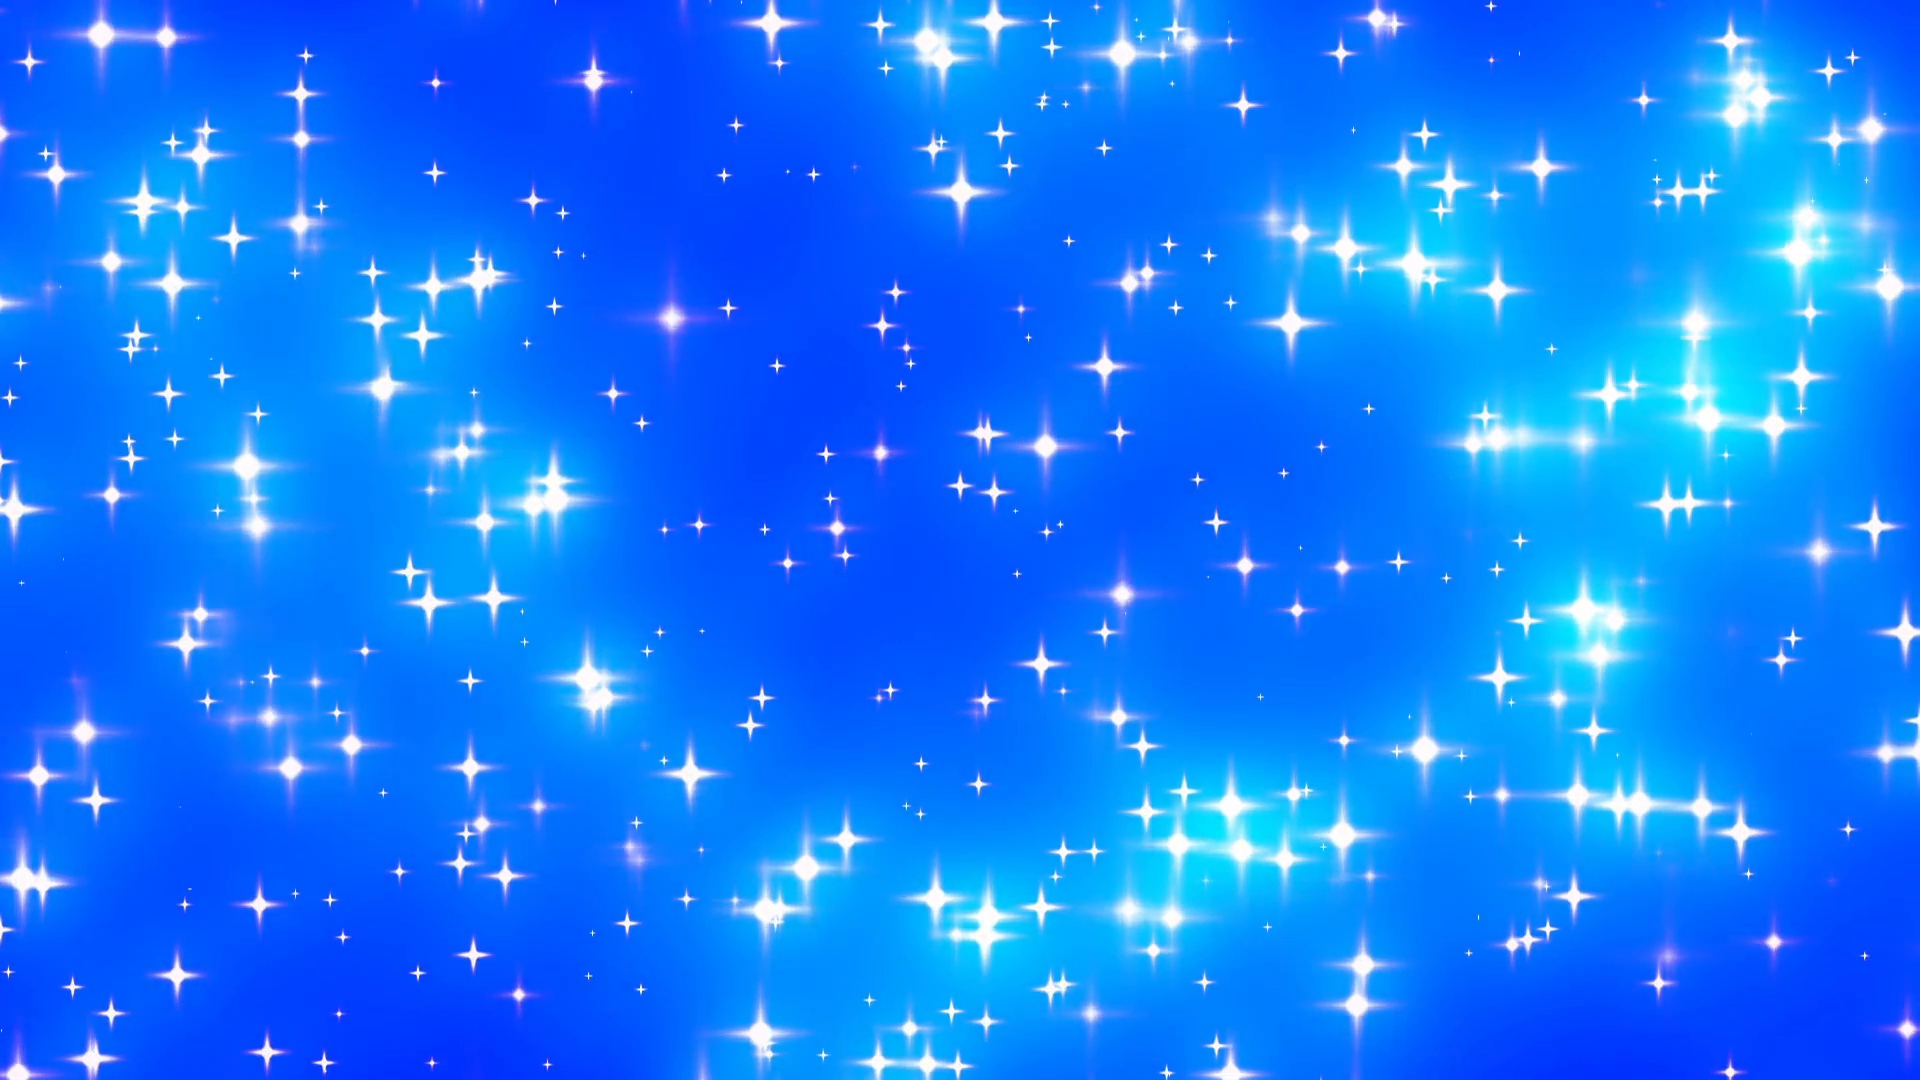 Blue Glowing Stars Background Loop 2 Den 69616   PNG Images   PNGio 1920x1080